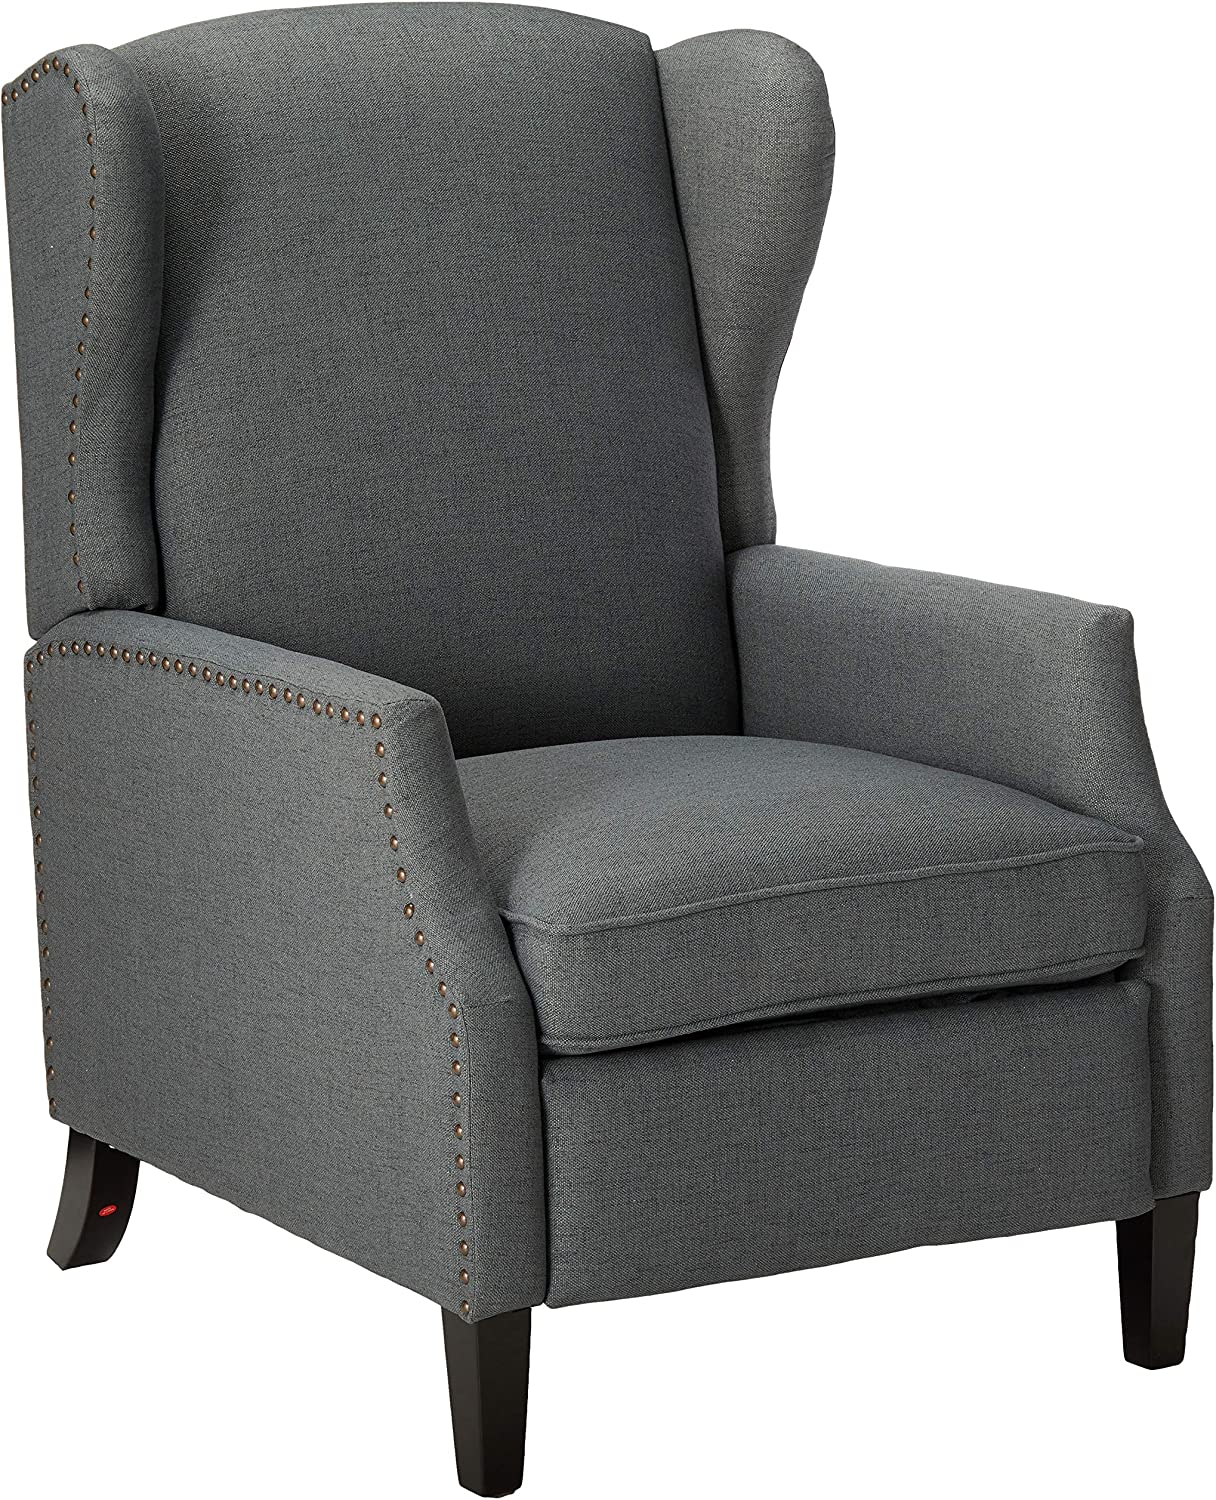 Christopher Knight Home Wescott Traditional Fabric Recliner, Charcoal